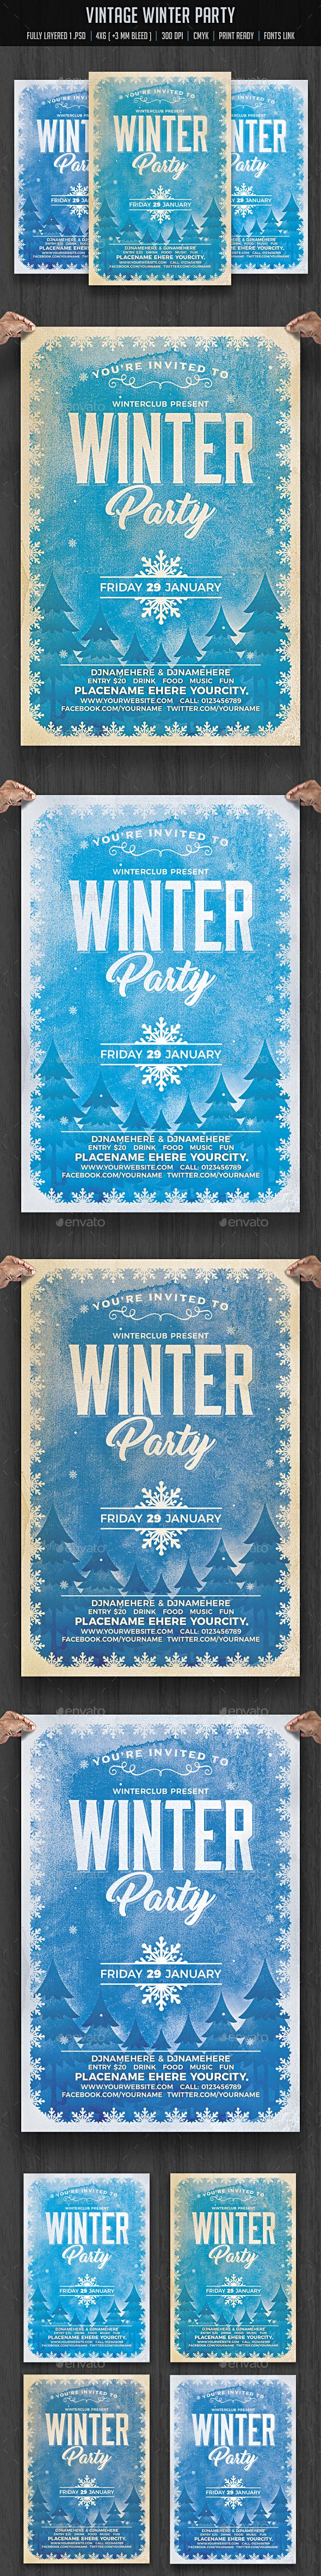 17 best images about flyers posters bbq party vintage winter party